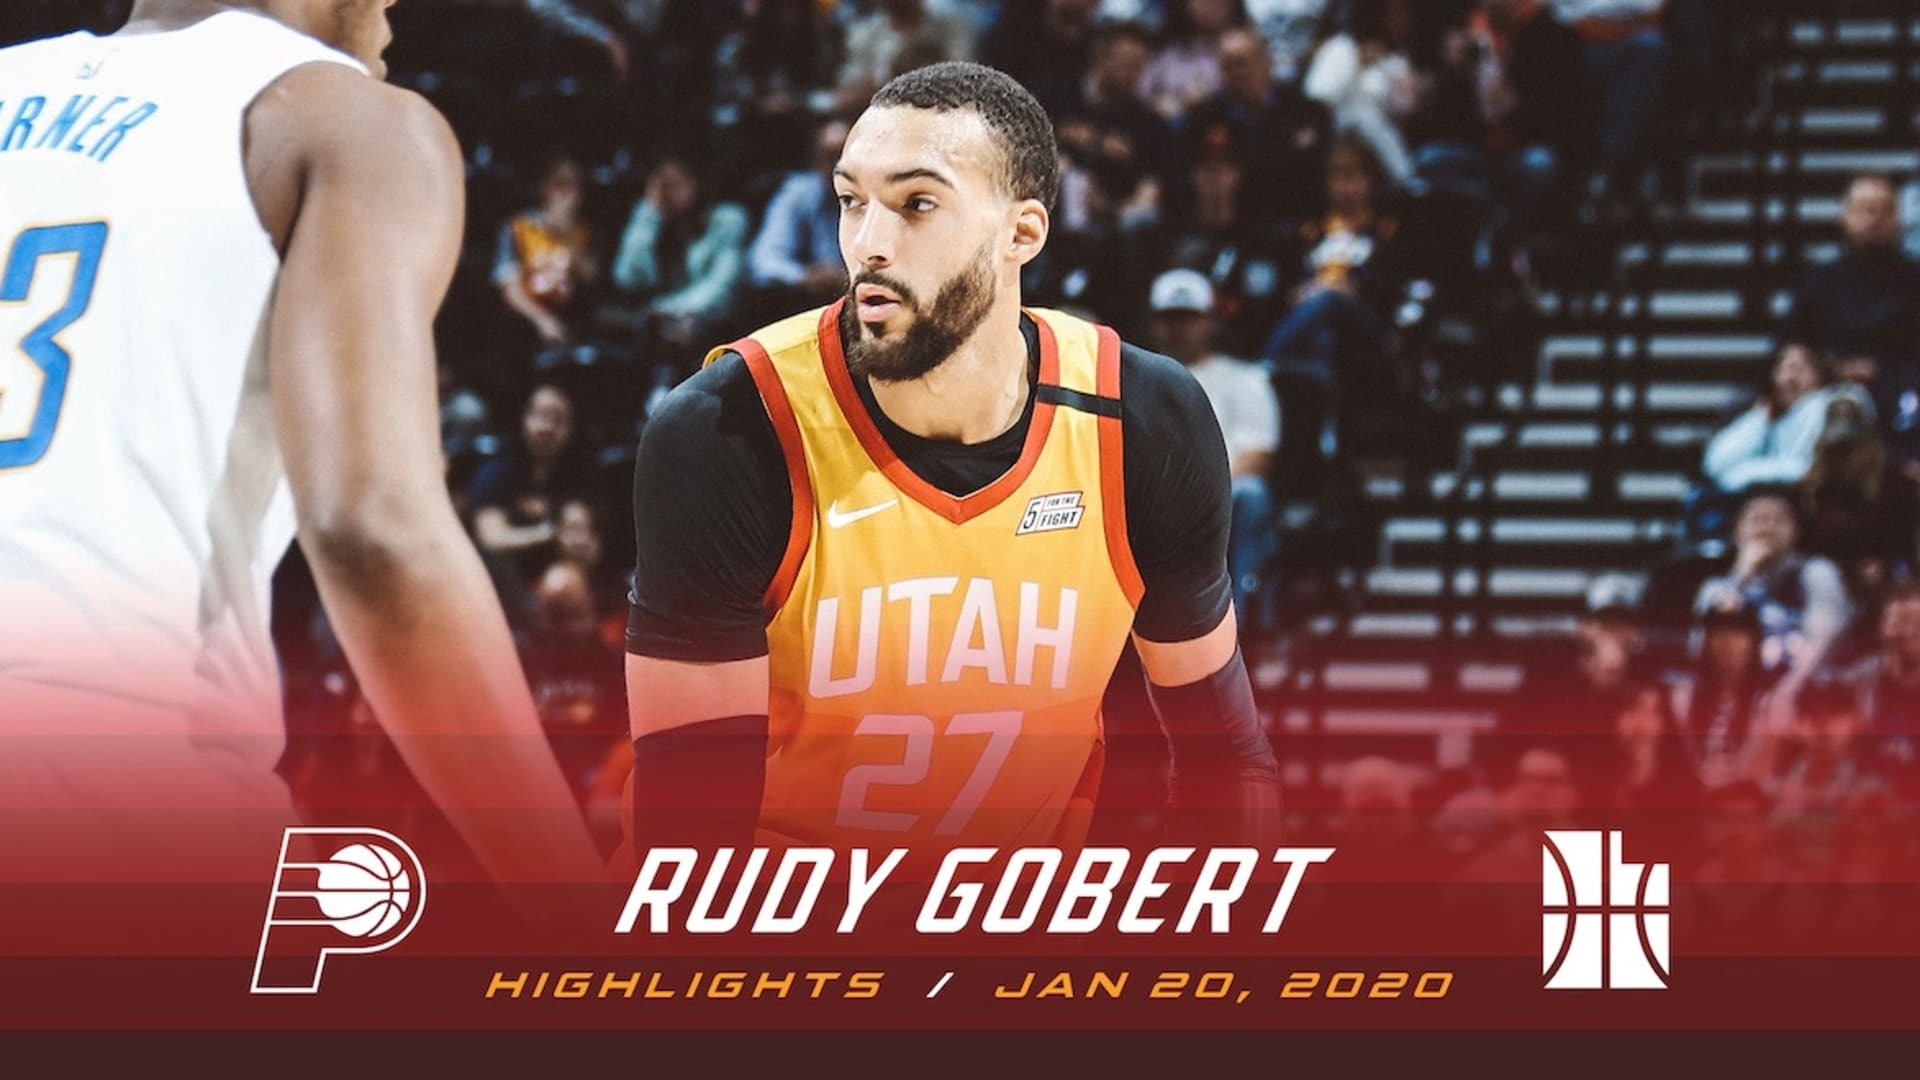 Highlights: Rudy Gobert — 20 points, 14 rebounds